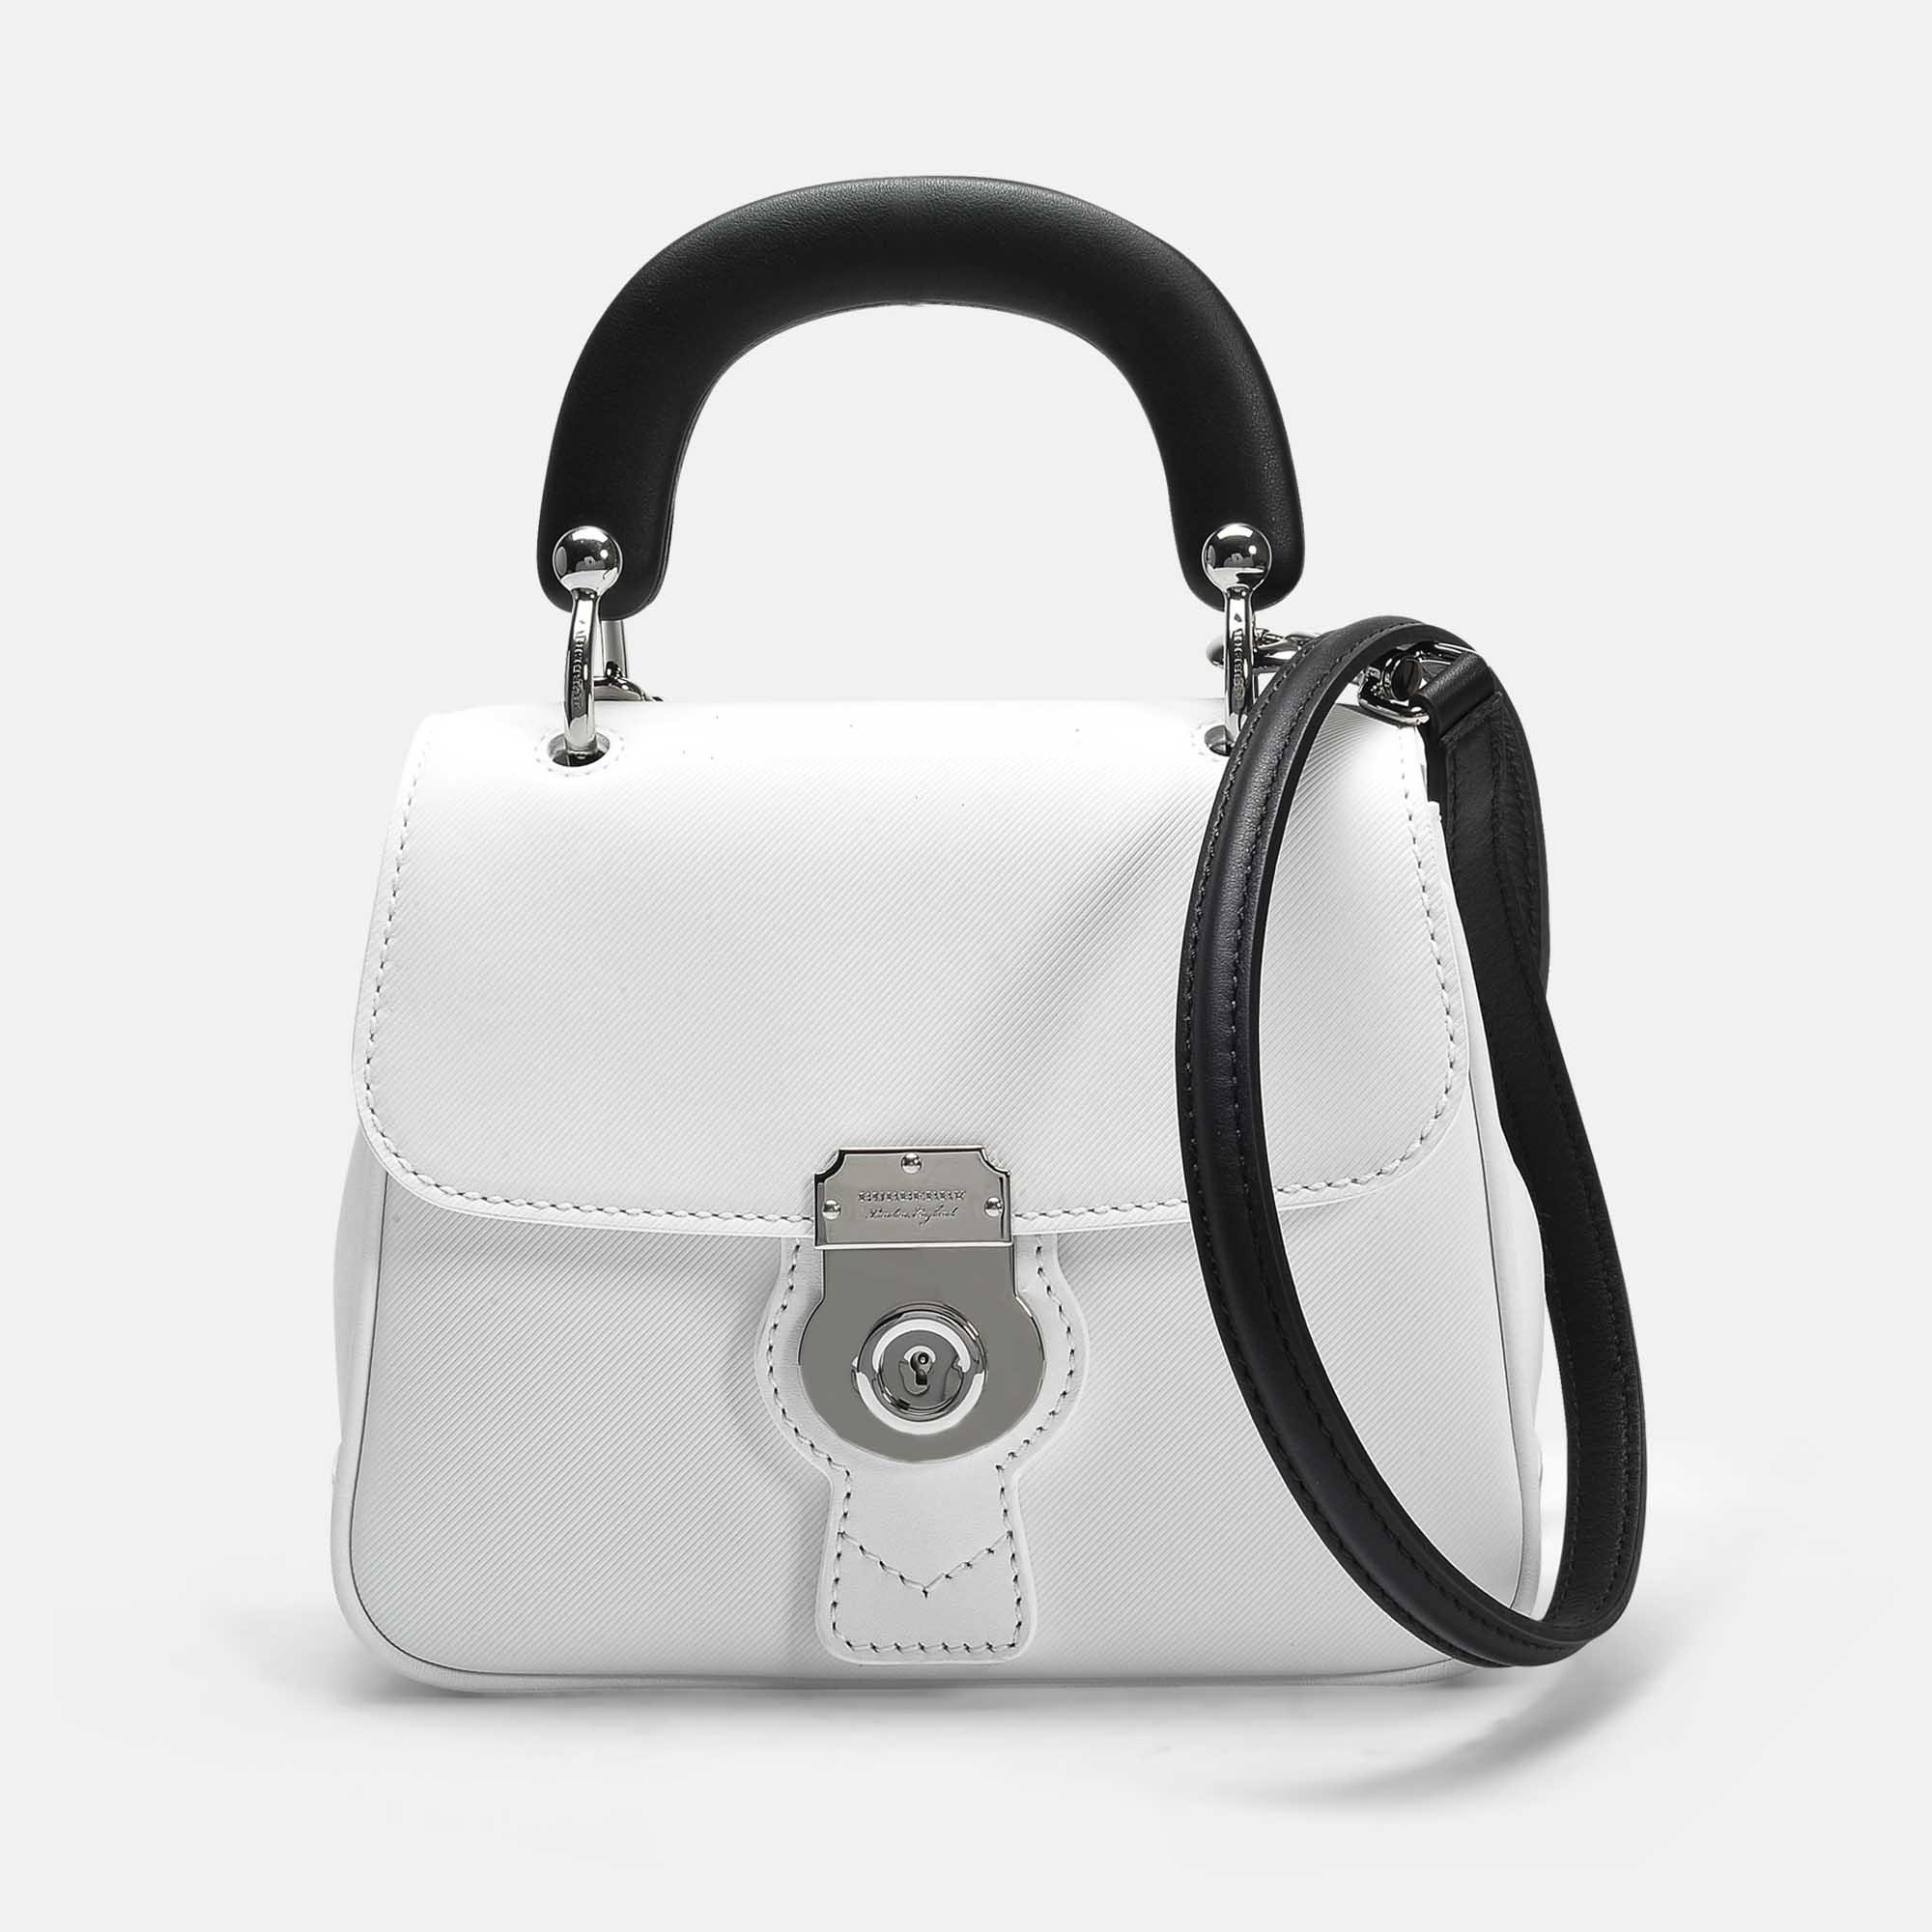 Discount Great Deals Pictures Small DK88 Top Handle Bag in Silver Embossed Calfskin Burberry Cheap Discount Sale Cheap 100% Authentic Clearance 100% Original 4IlS2l